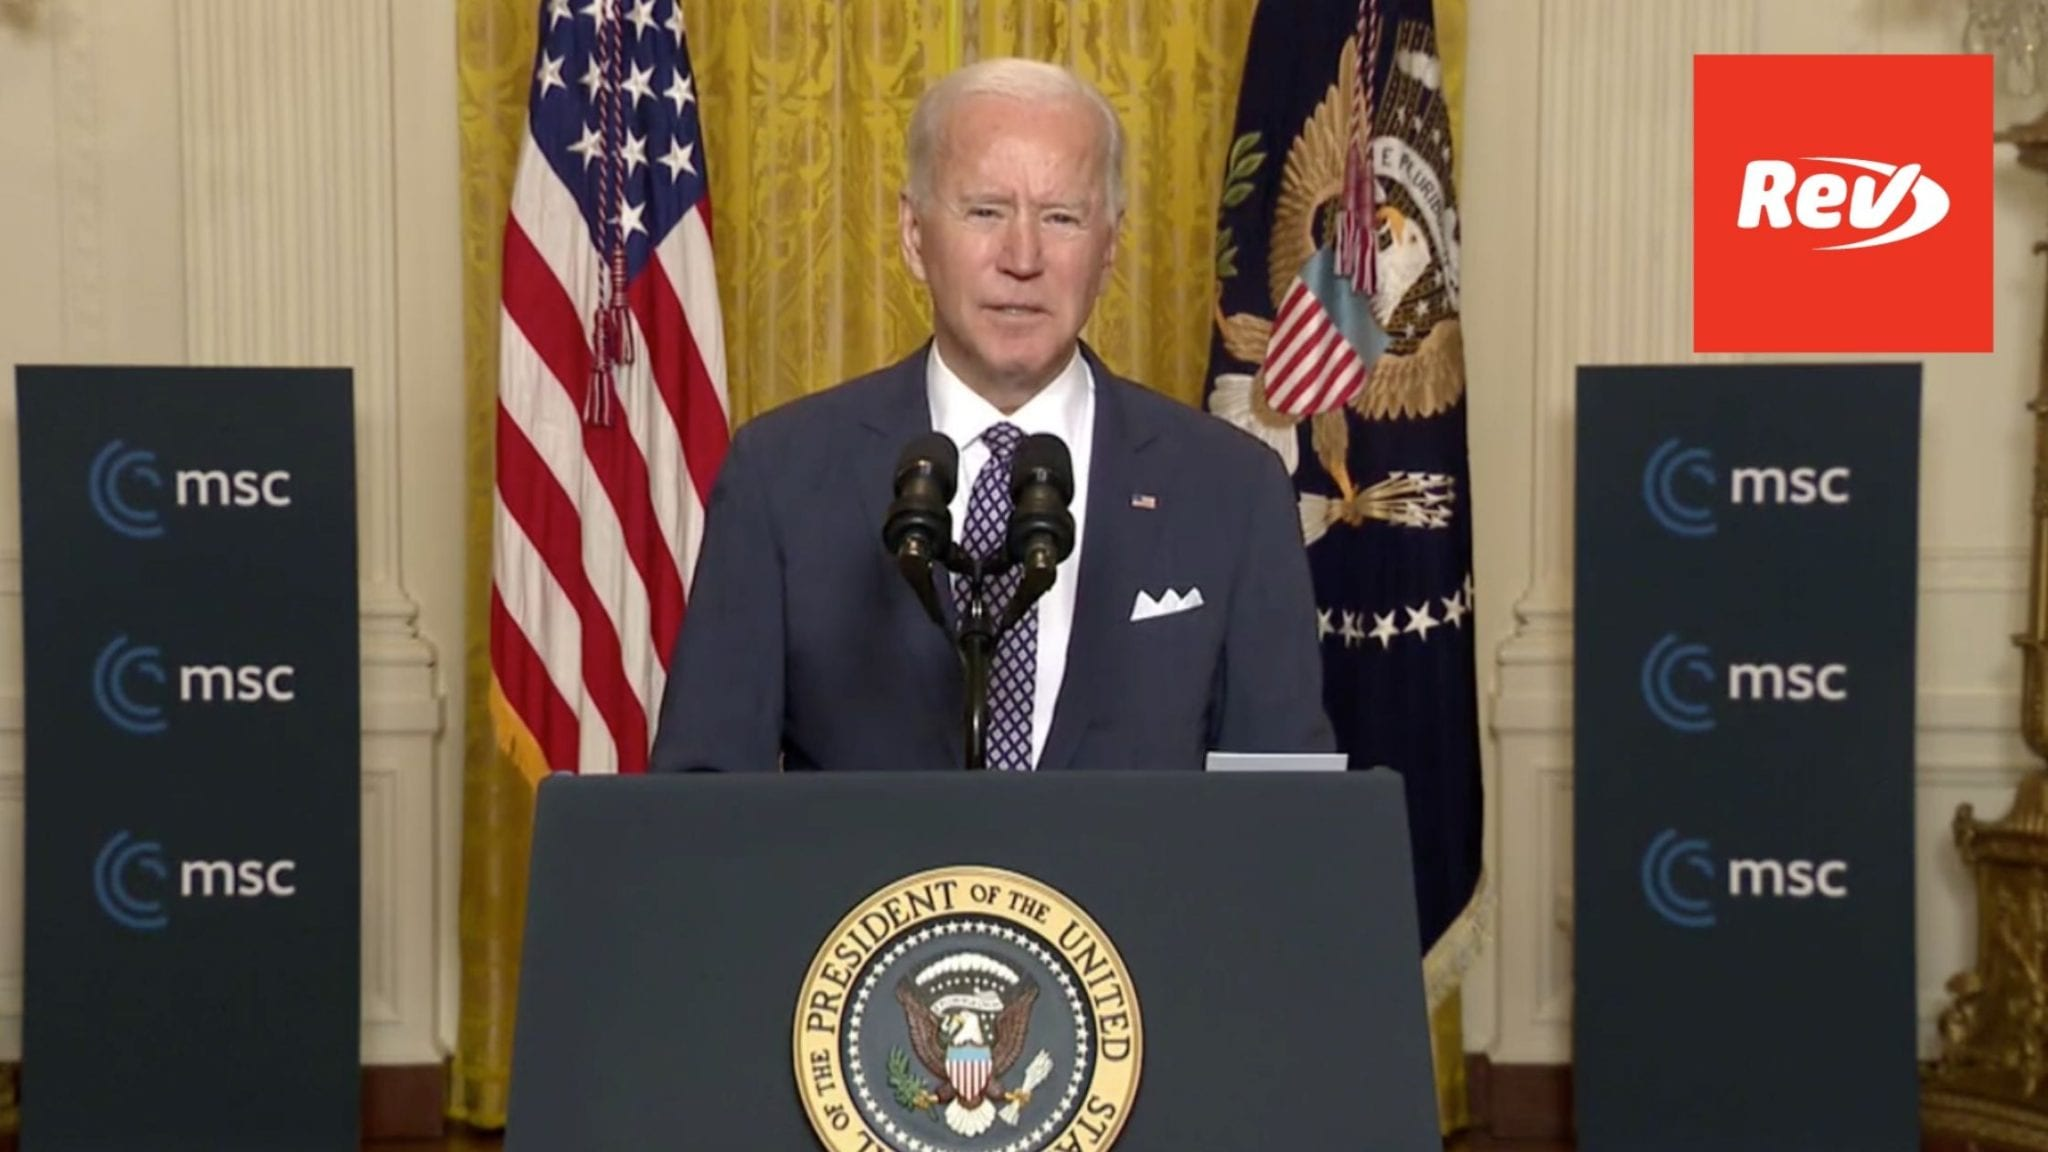 Joe Biden Speech at 2021 Munich Security Conference Transcript